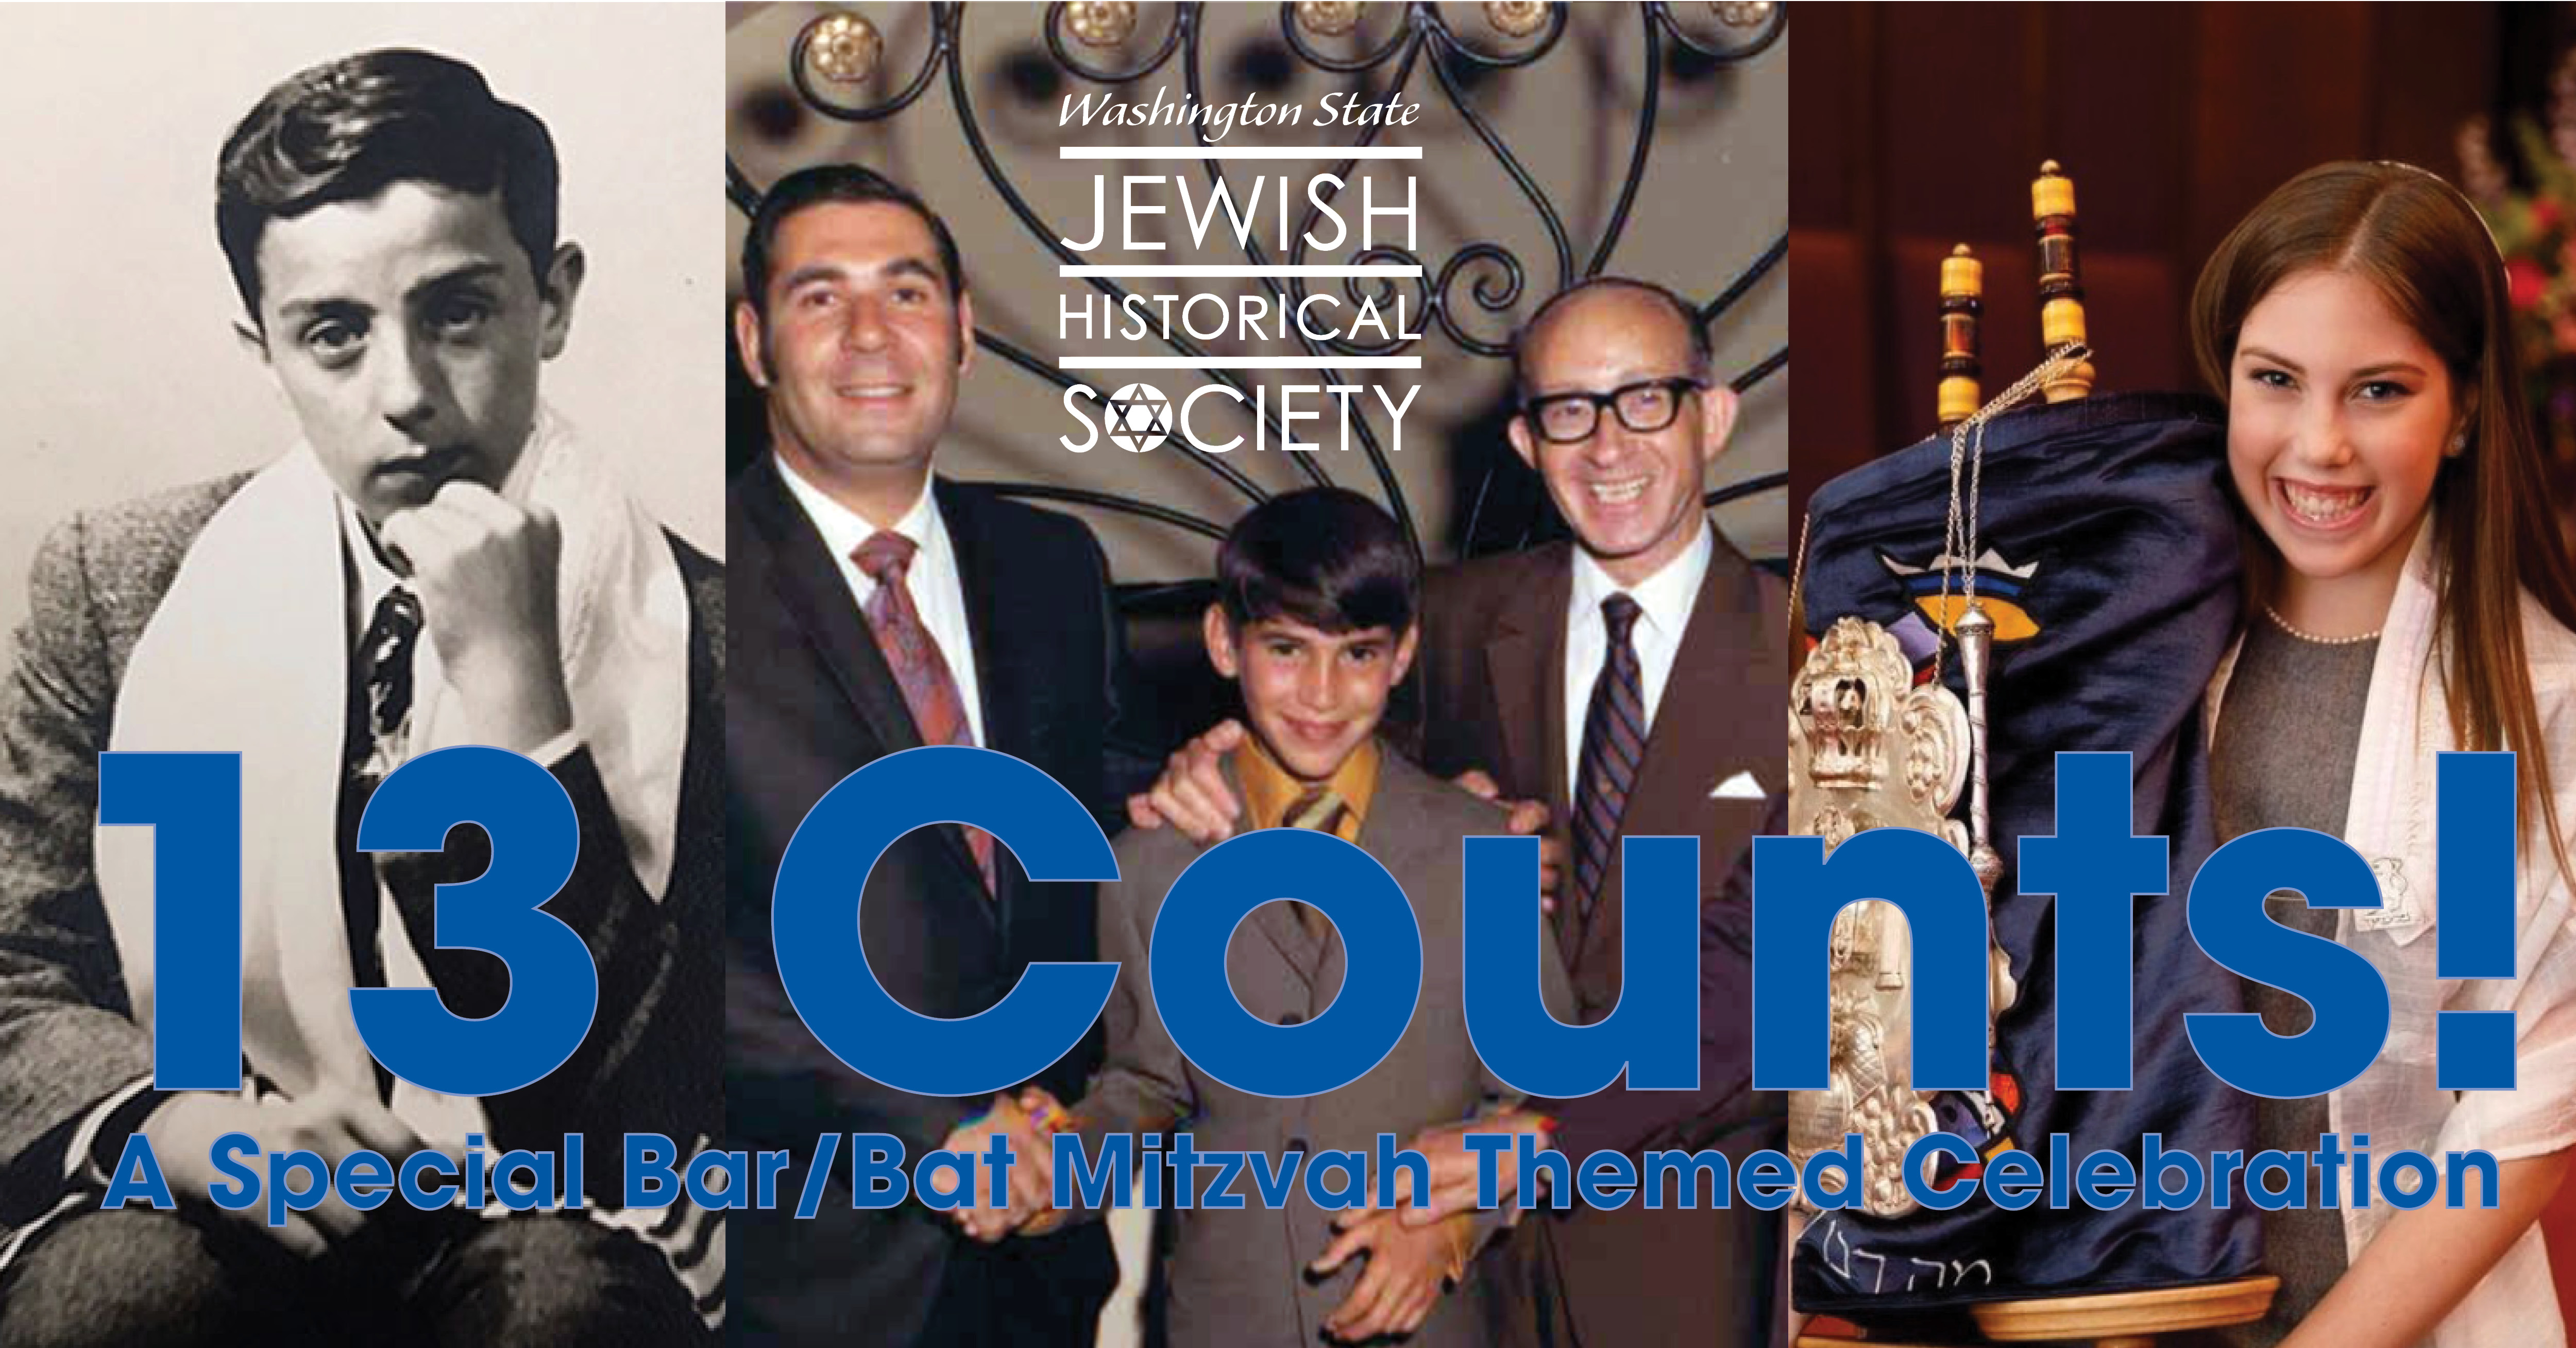 13 Counts! A Special Celebration + WSJHS Annual Meeting